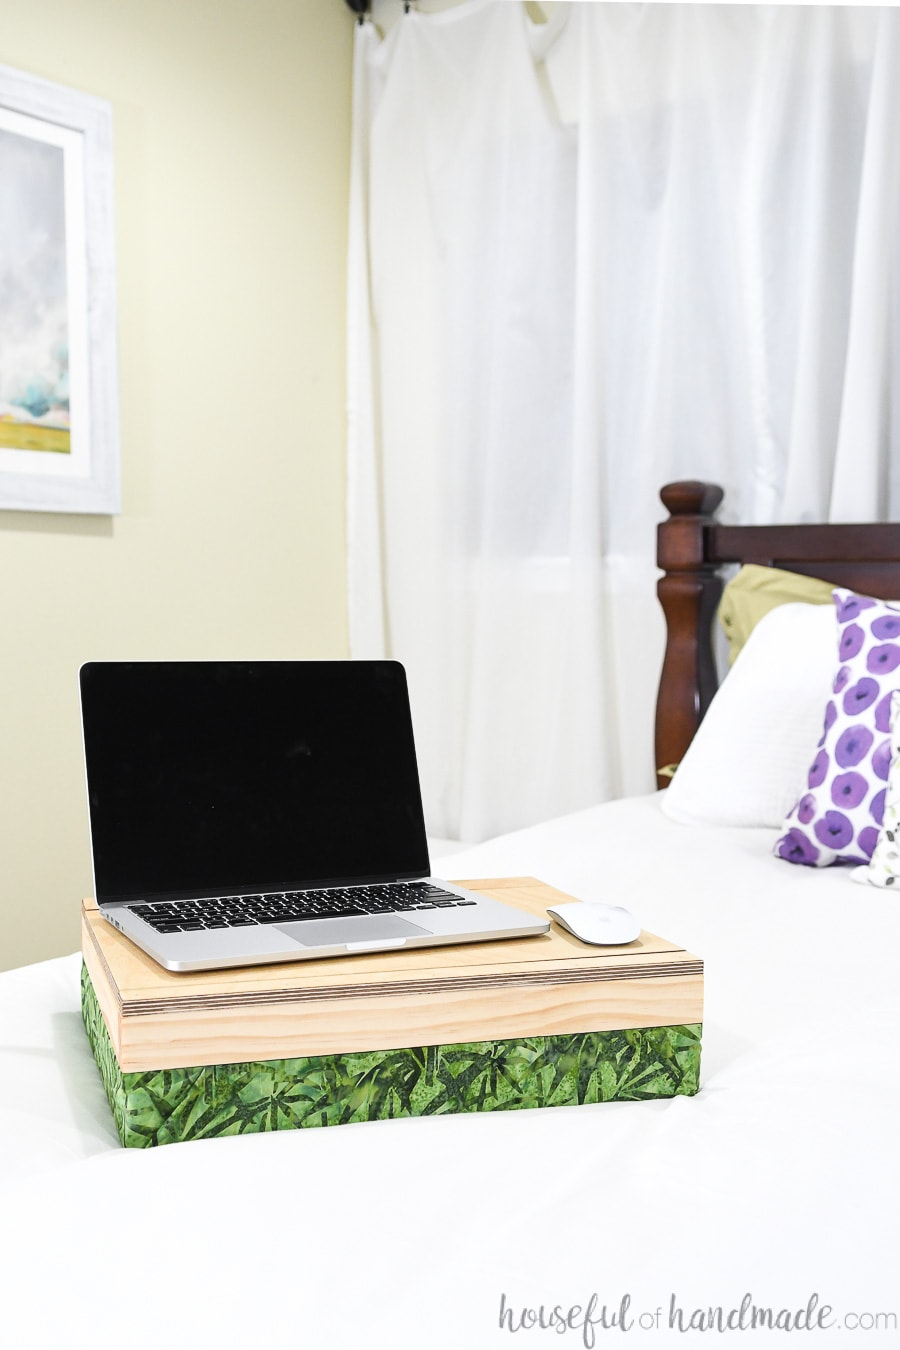 Easy DIY lap desk with a laptop and mouse on it, sitting on a bed.